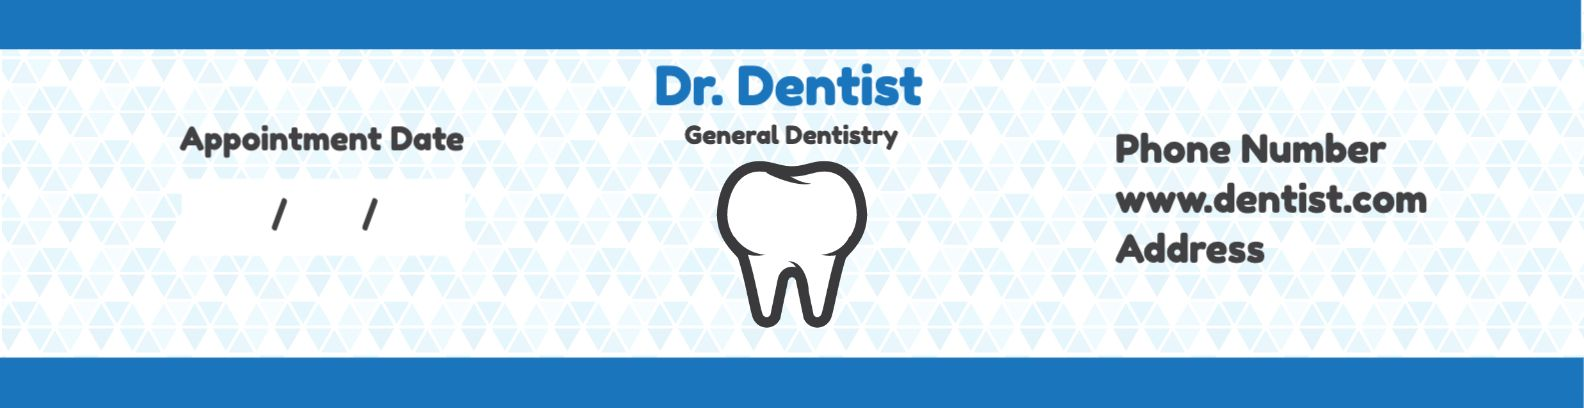 Simple Dentistry Template